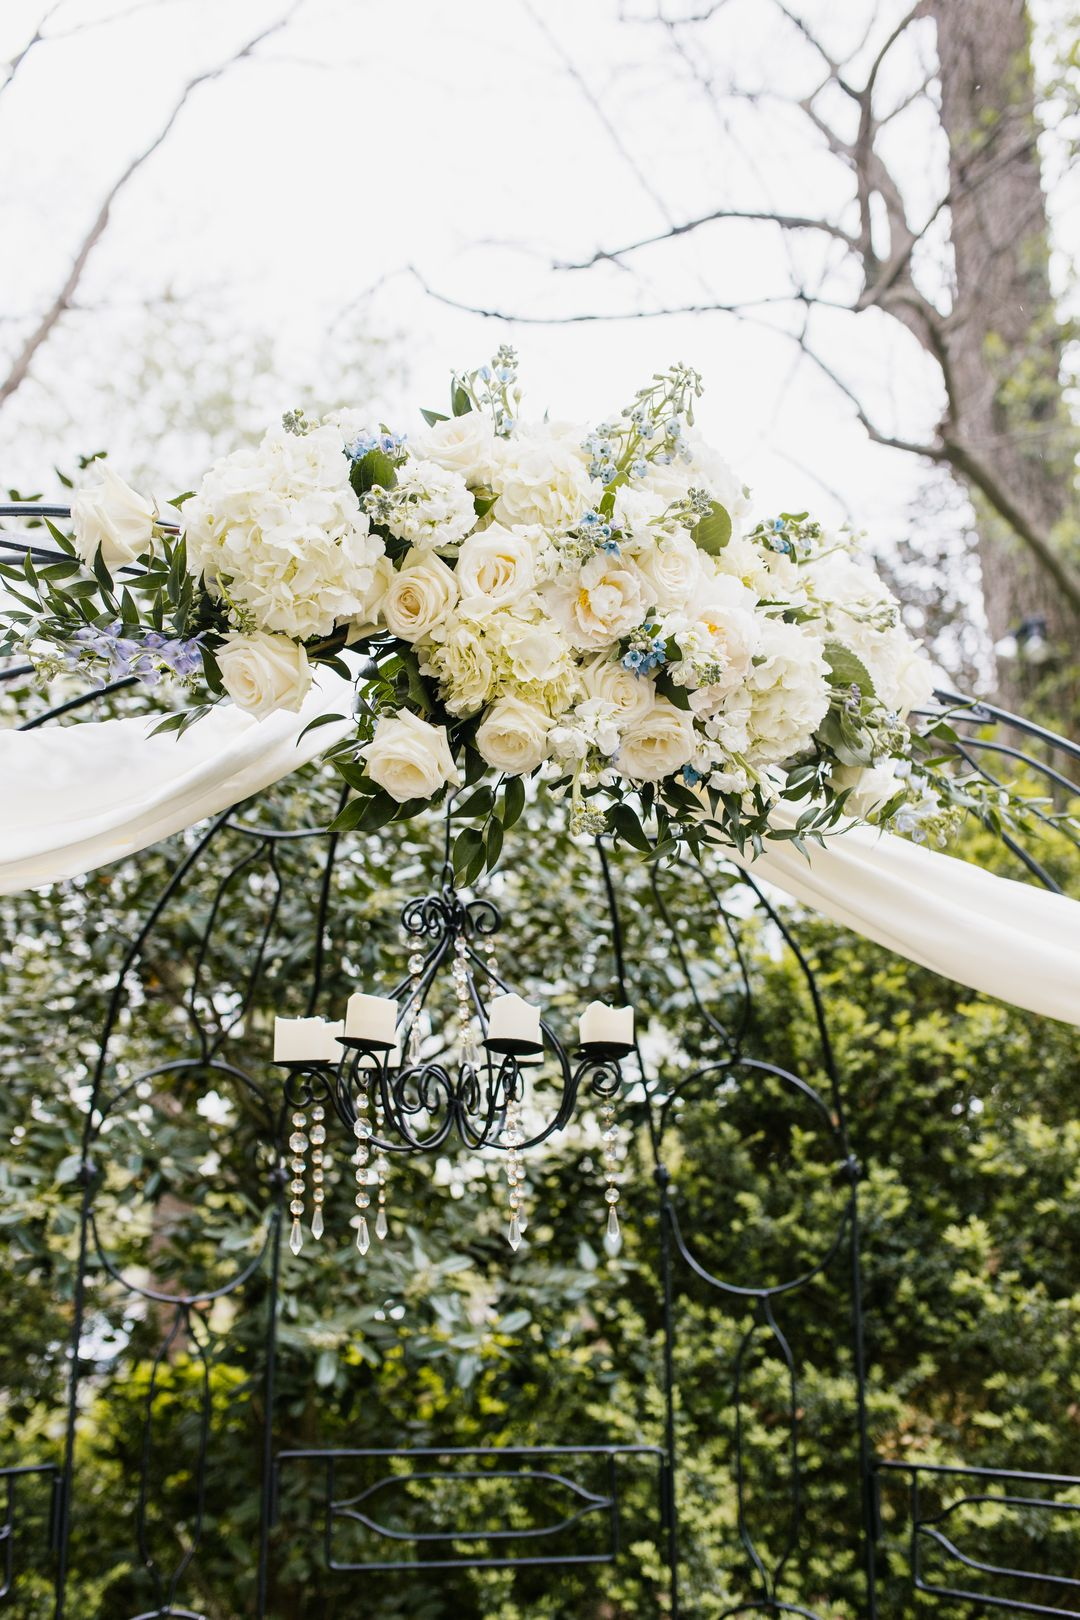 all white wedding flowers for wedding backdrop